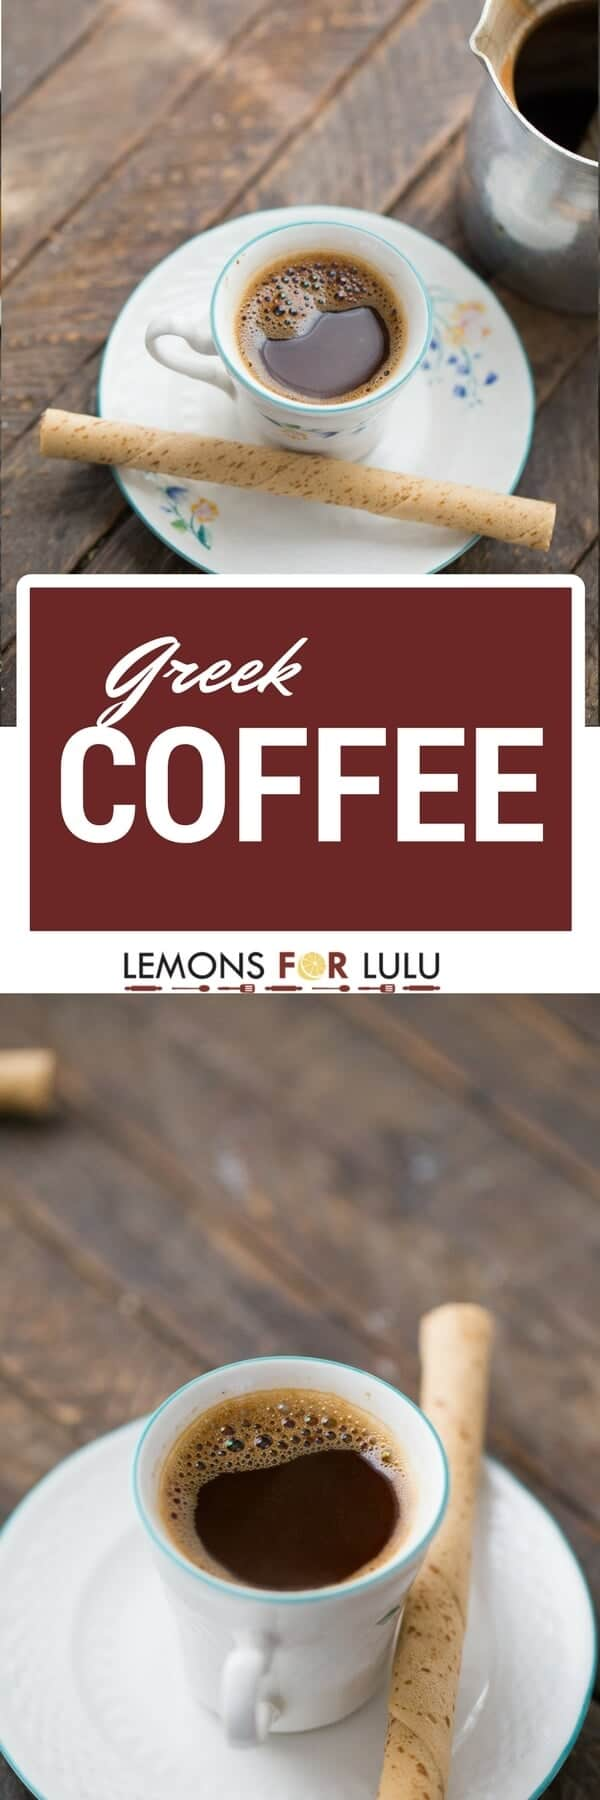 Nothing goes better with company than small cup of rich and strong Greek coffee.